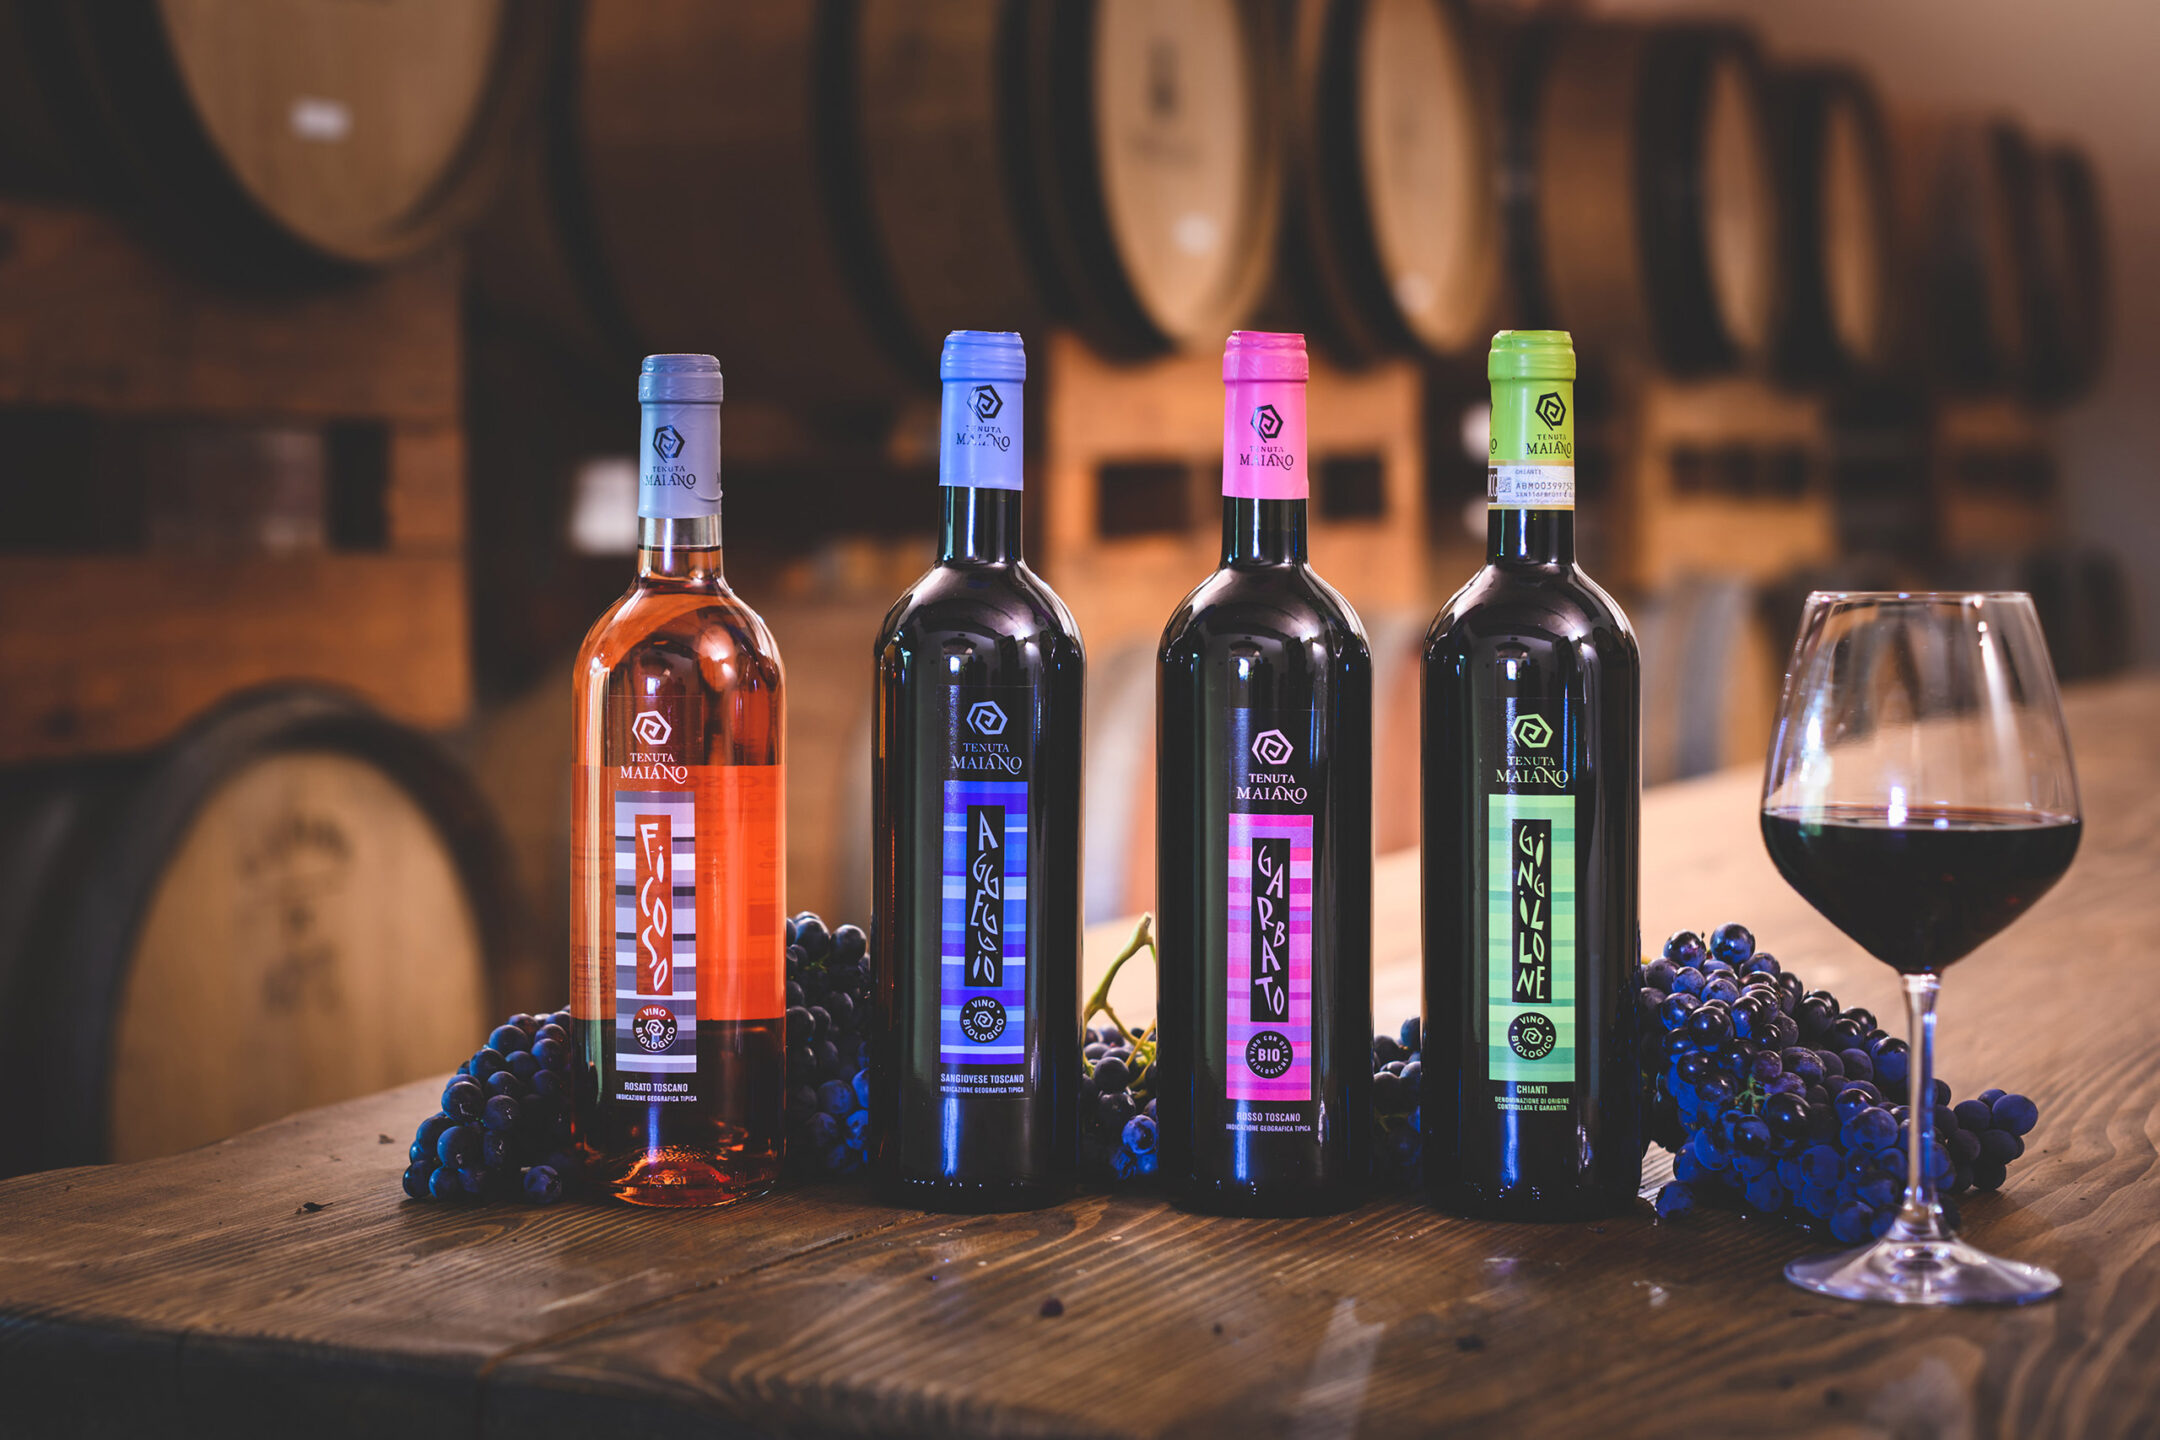 Our organic Extra Virgin olive oil and wines follow the slow rhythms of nature - Our organic Extra Virgin olive oil and wines follow the slow rhythms of nature